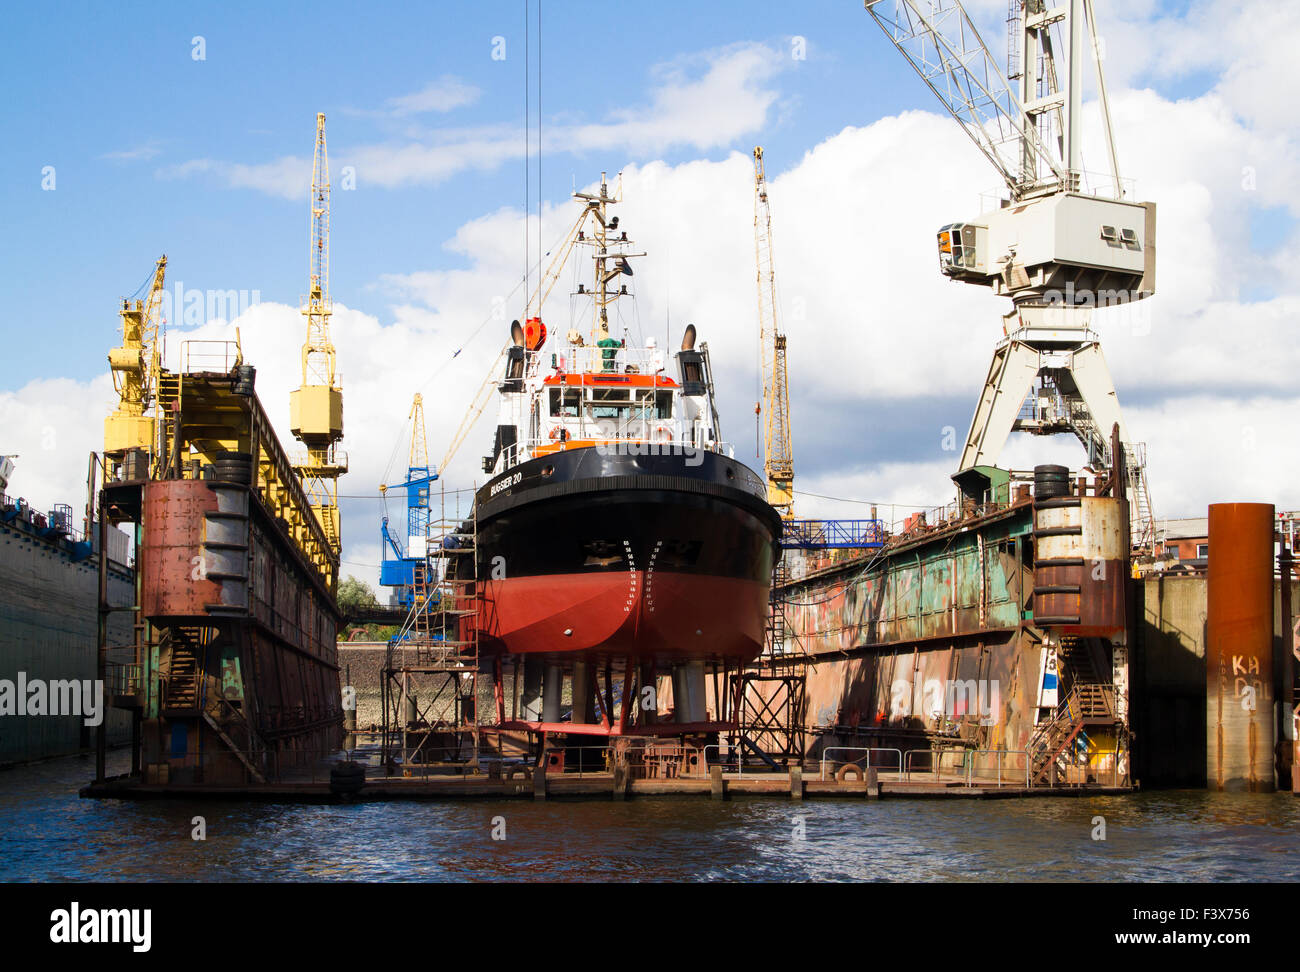 Icebreakers in the Dock - Stock Image